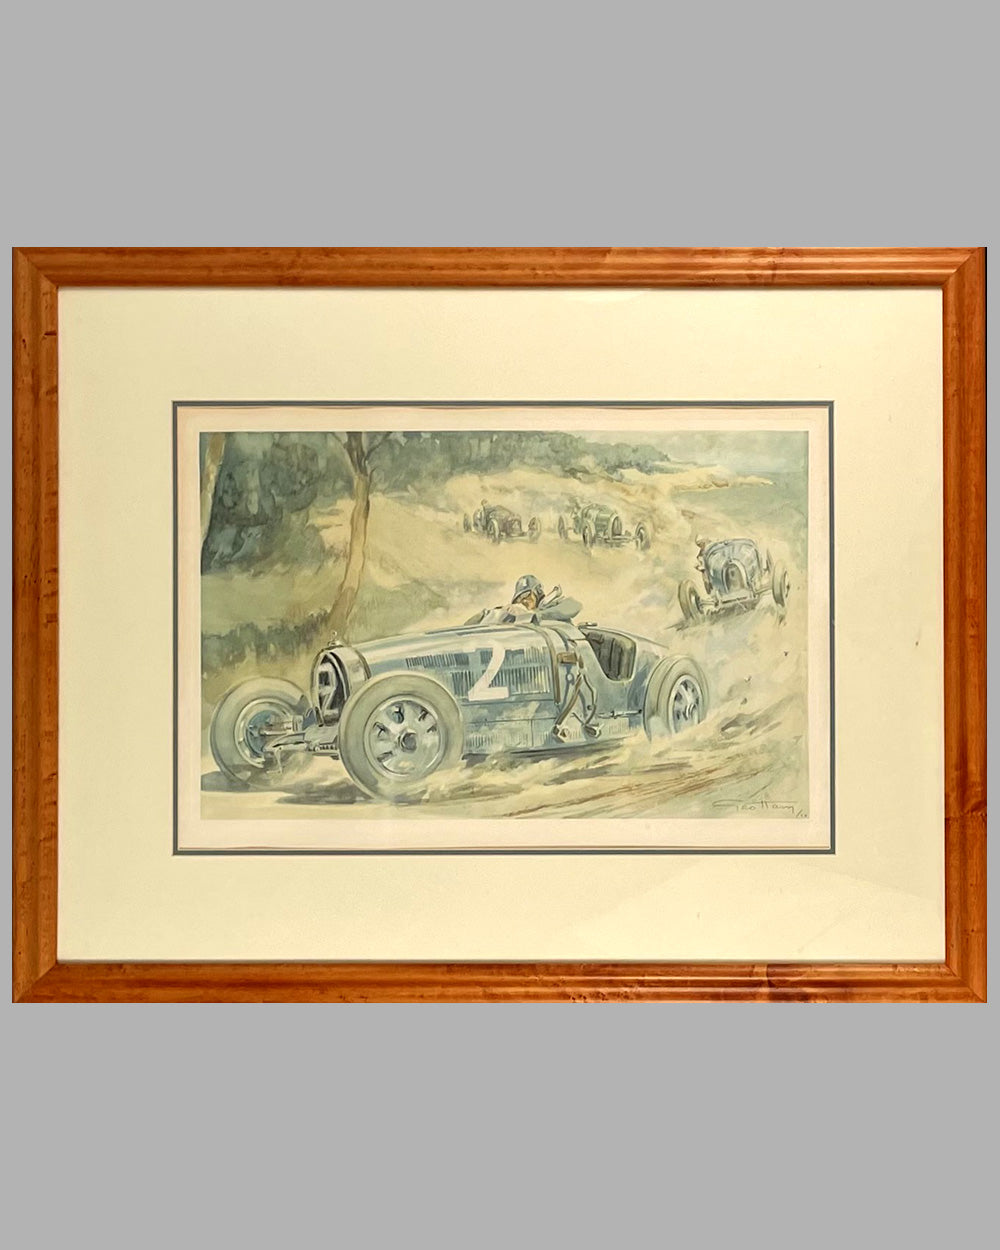 16 - Louis Chiron at the Antibes G.P. in 1928 lithograph by Geo Ham - Est. $700-$950